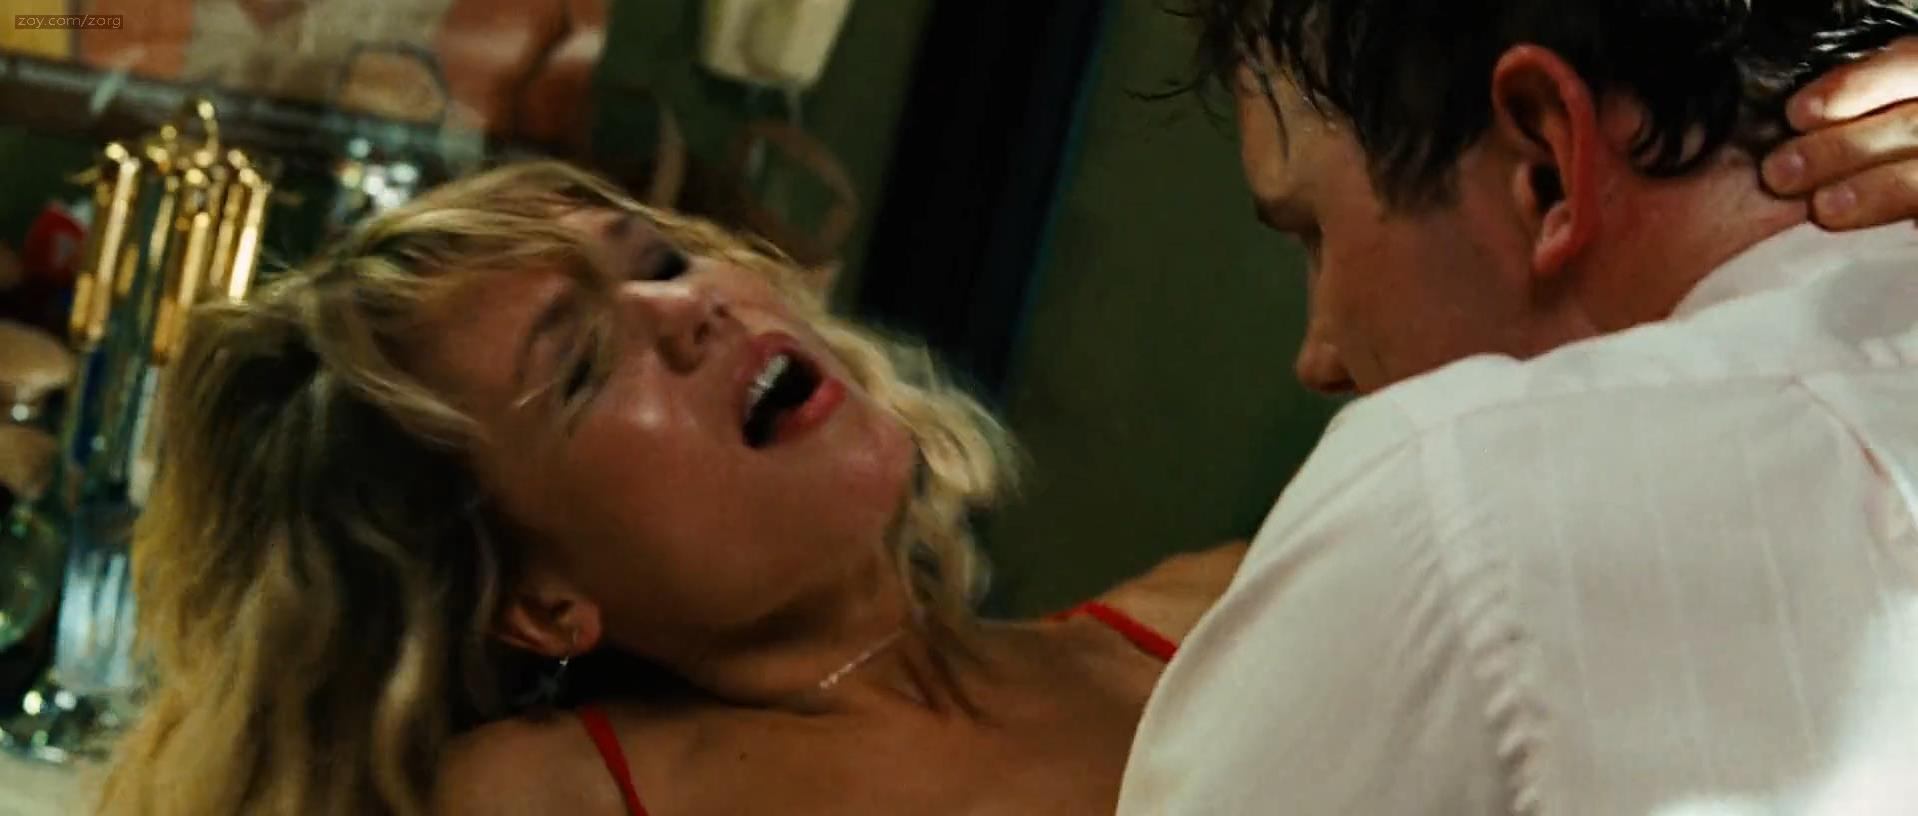 Sex scene from wanted